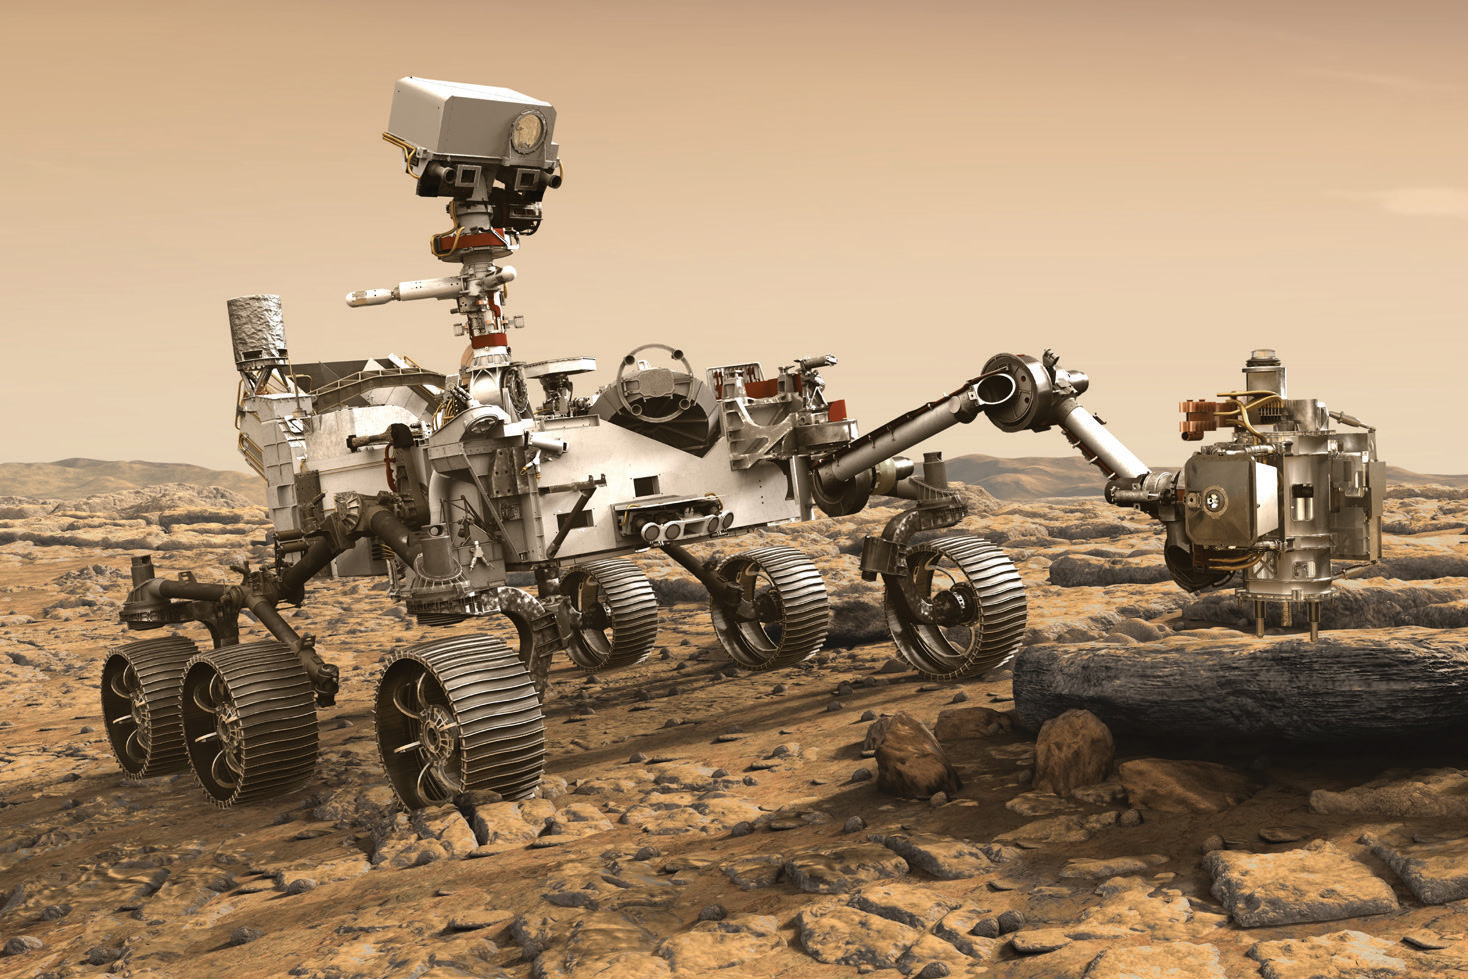 With Perseverance, MIT teams prepare for Mars rover landing